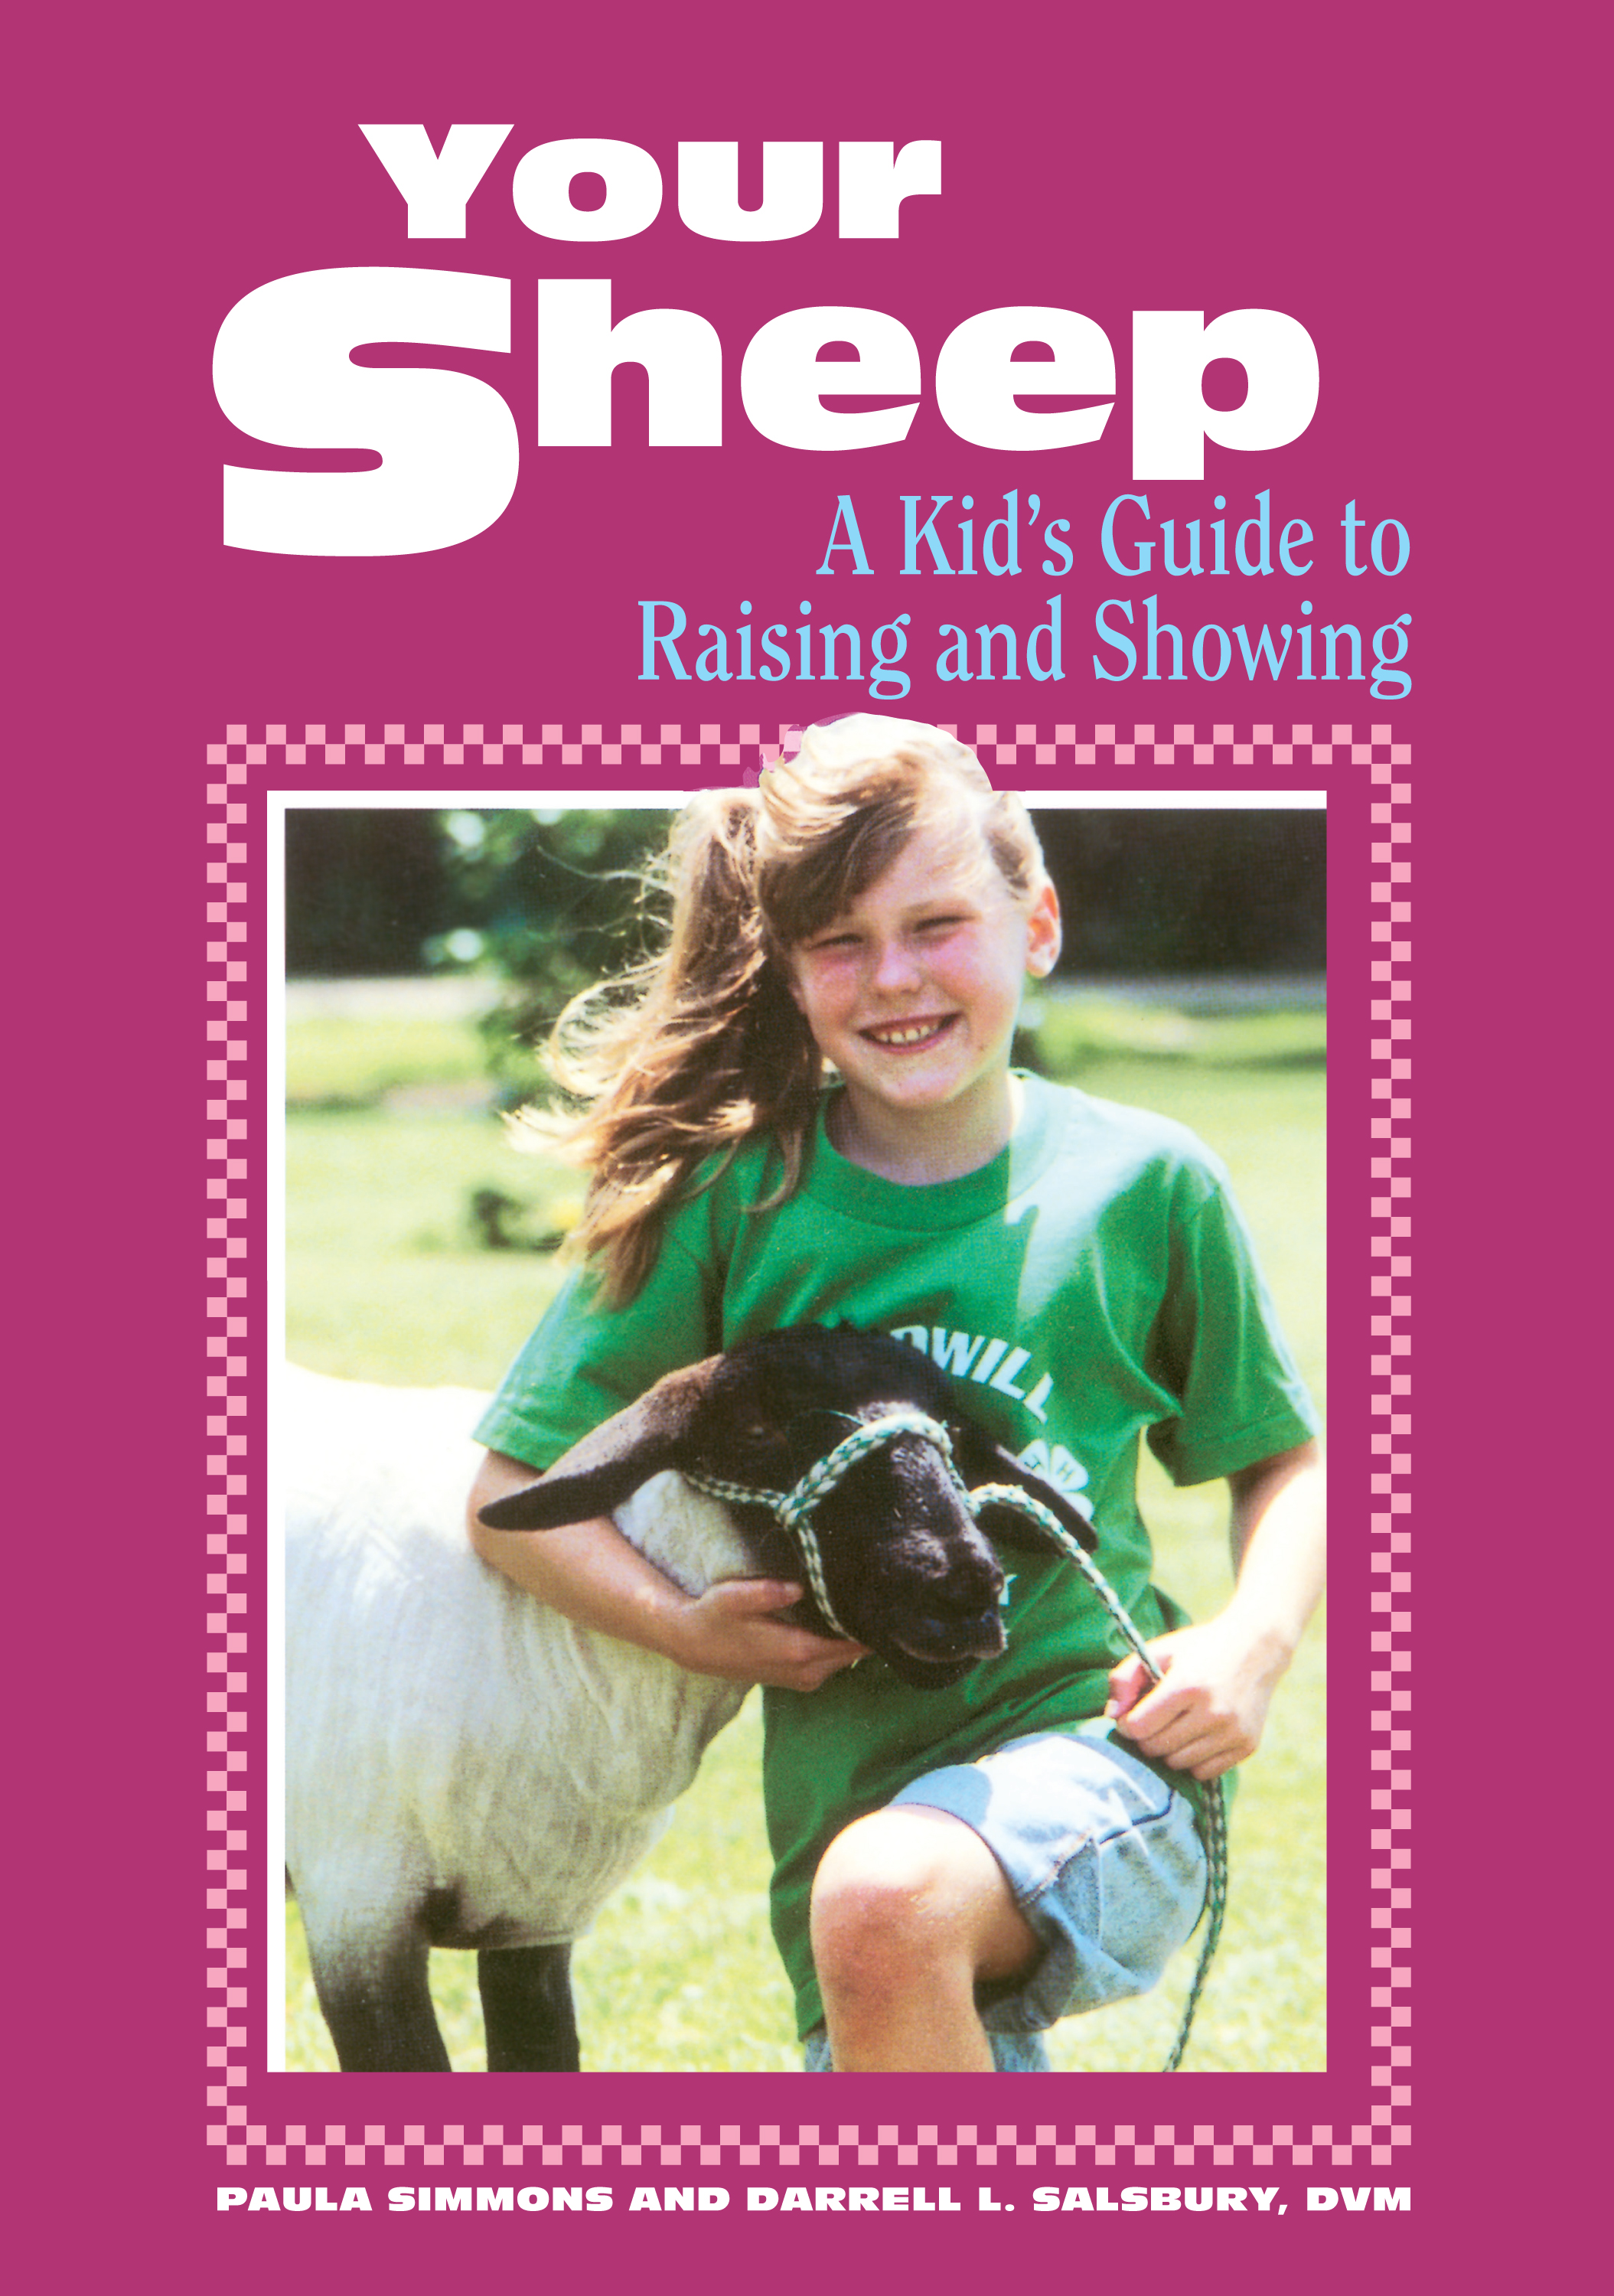 Your Sheep A Kid's Guide to Raising and Showing - Paula Simmons